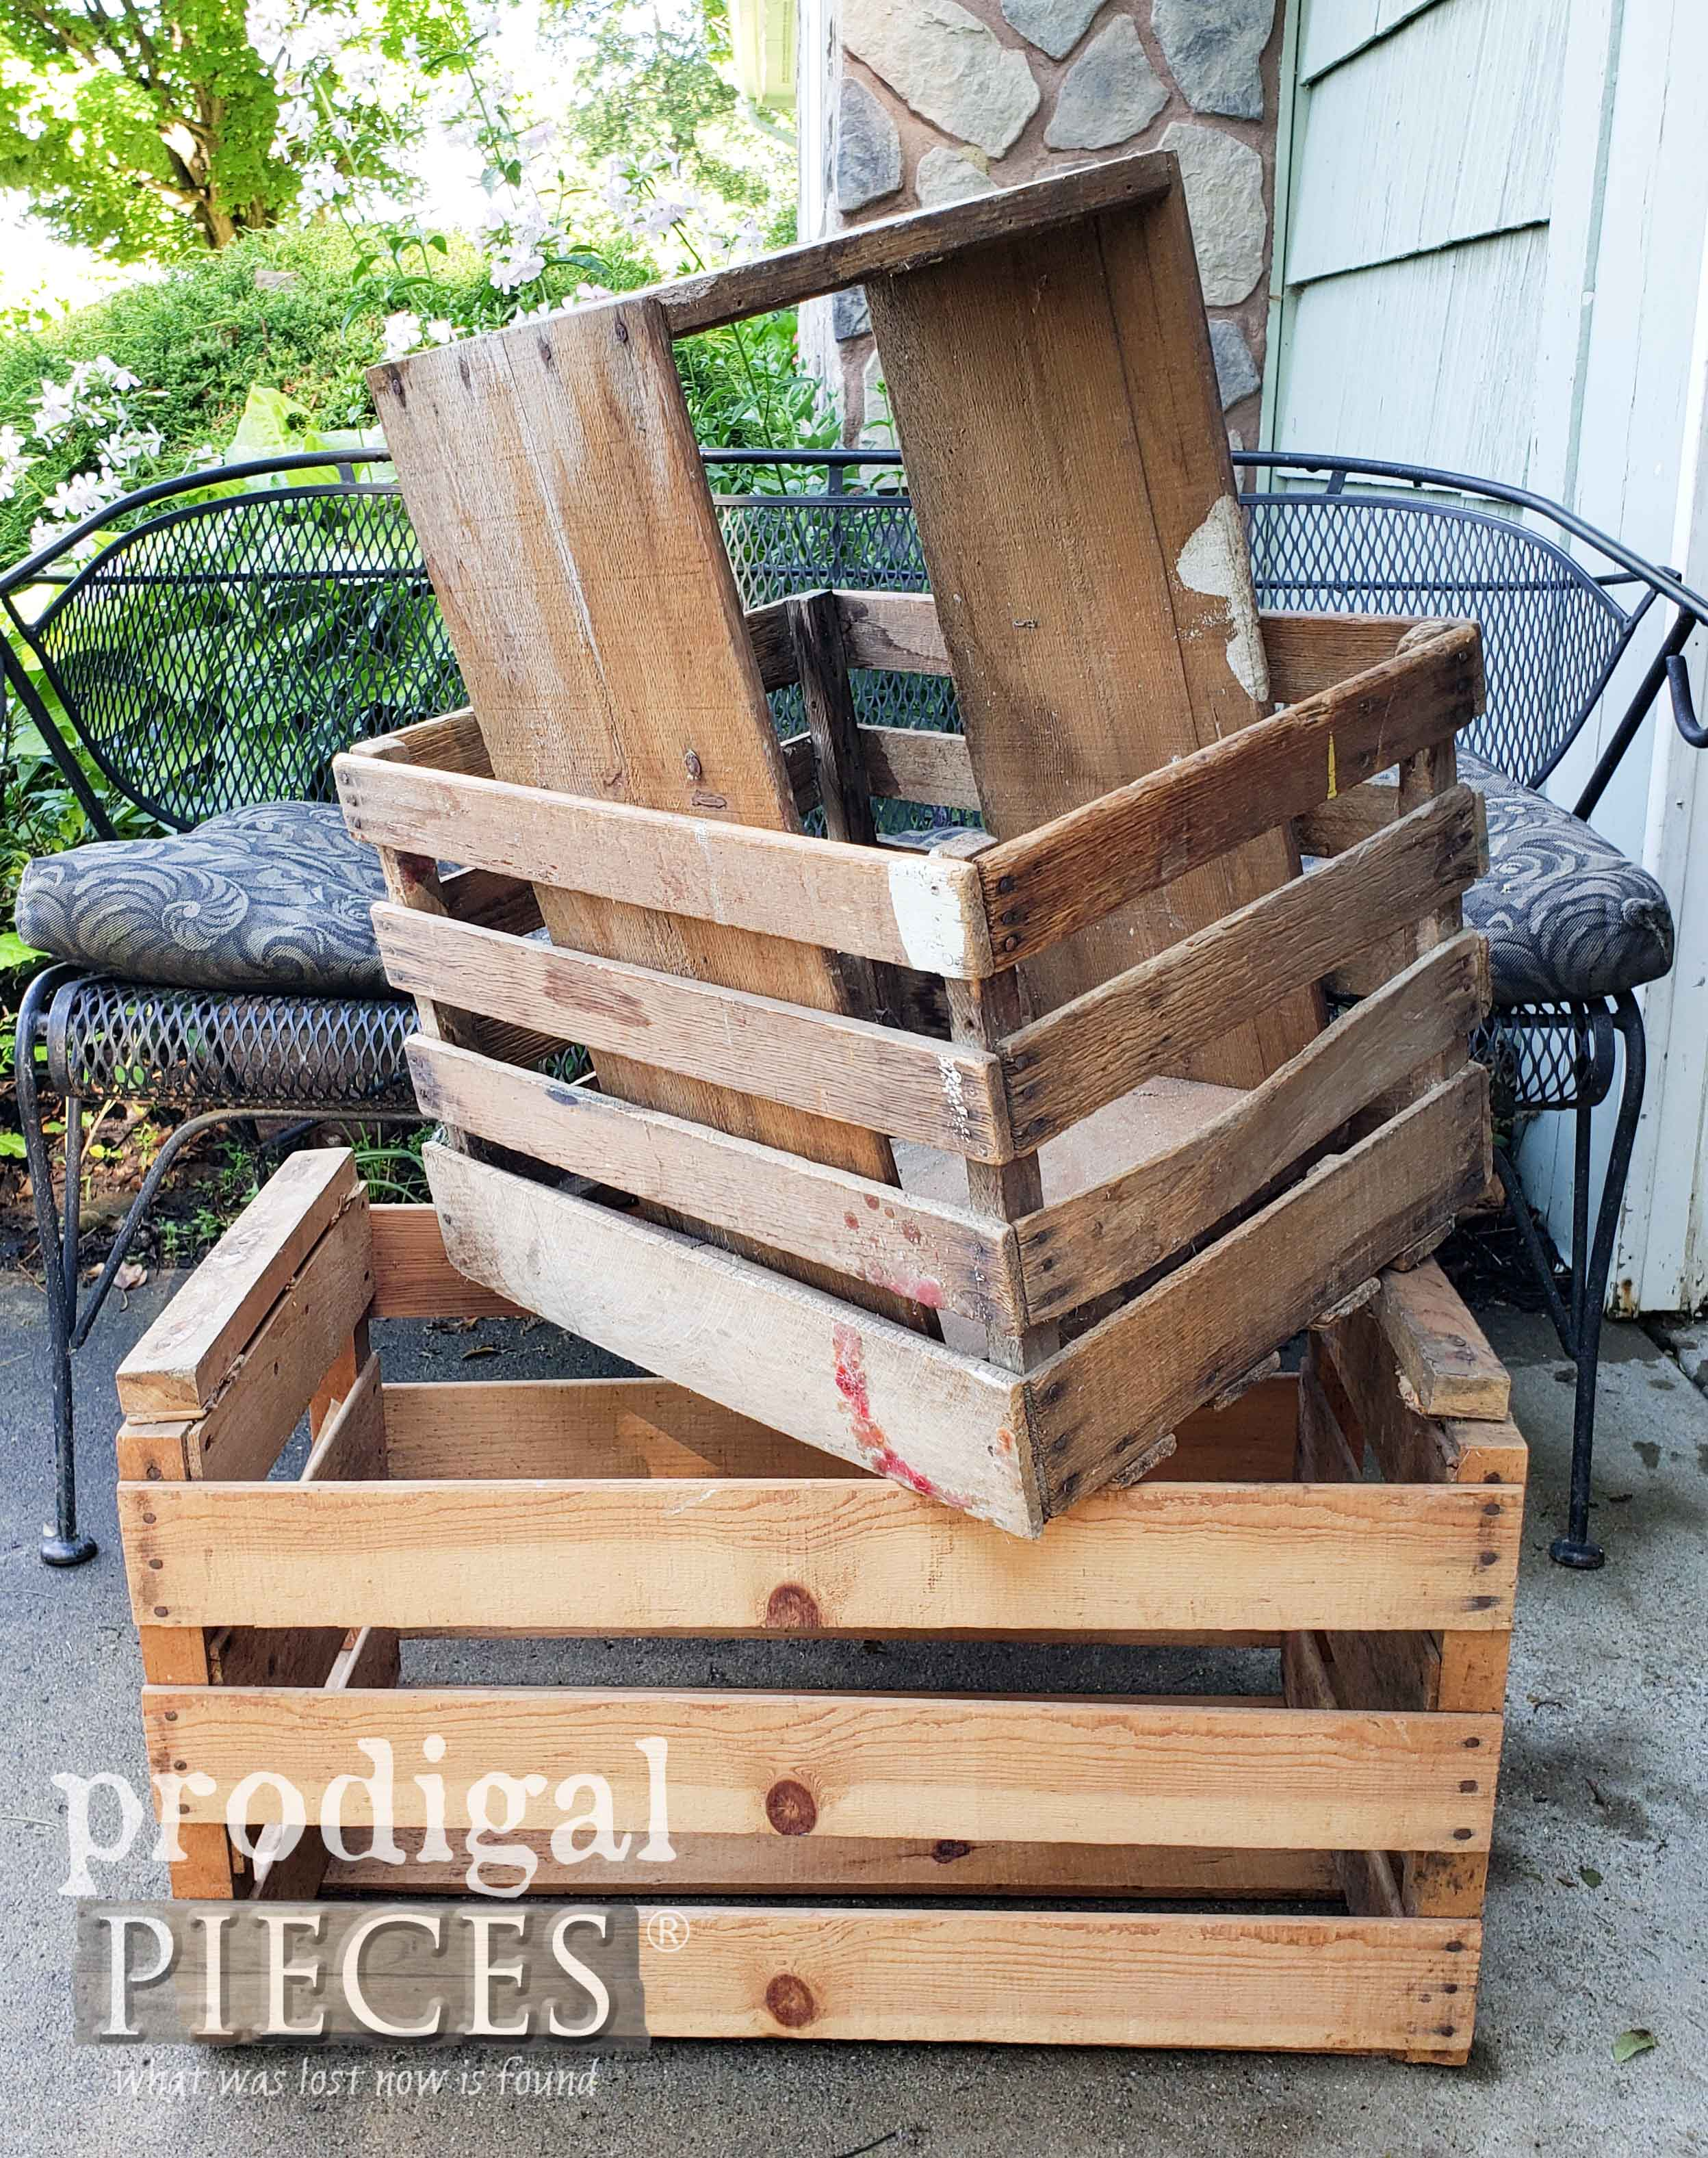 Old Antique Wooden Crates Before Upcycle | prodigalpieces.com